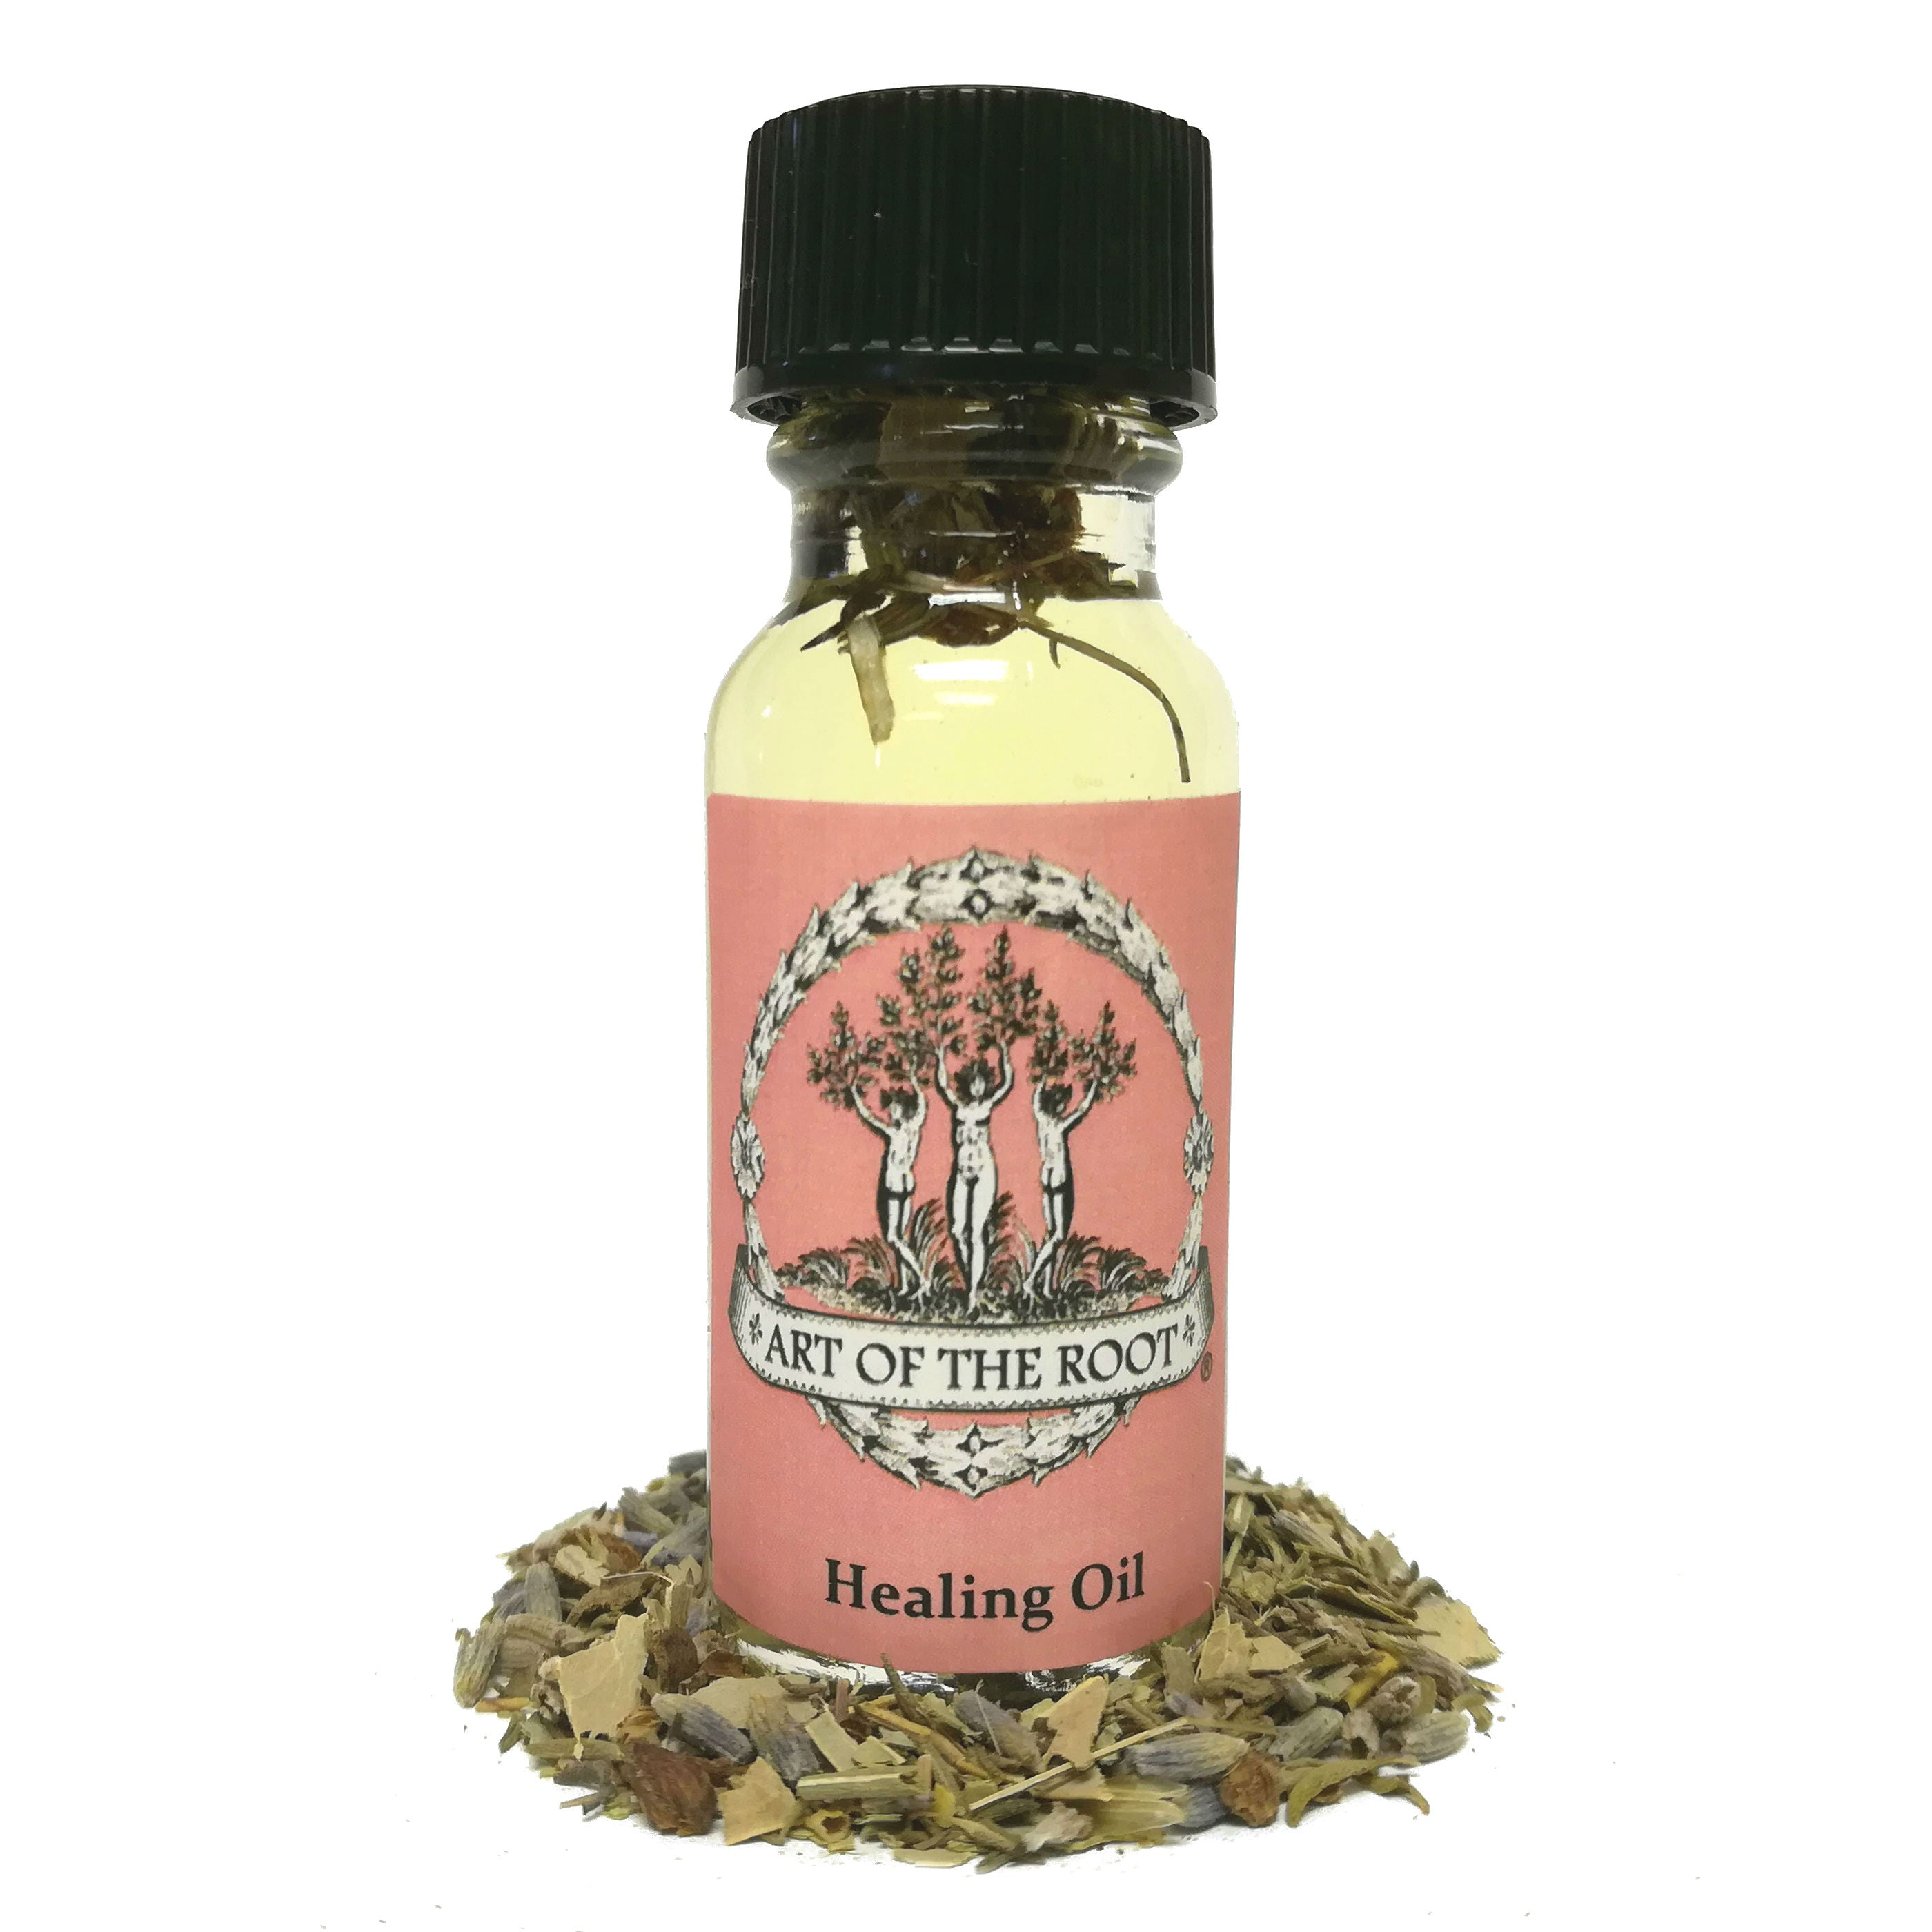 Healing Oil 1/2 oz for Hoodoo, Voodoo, Wicca & Pagan Rituals